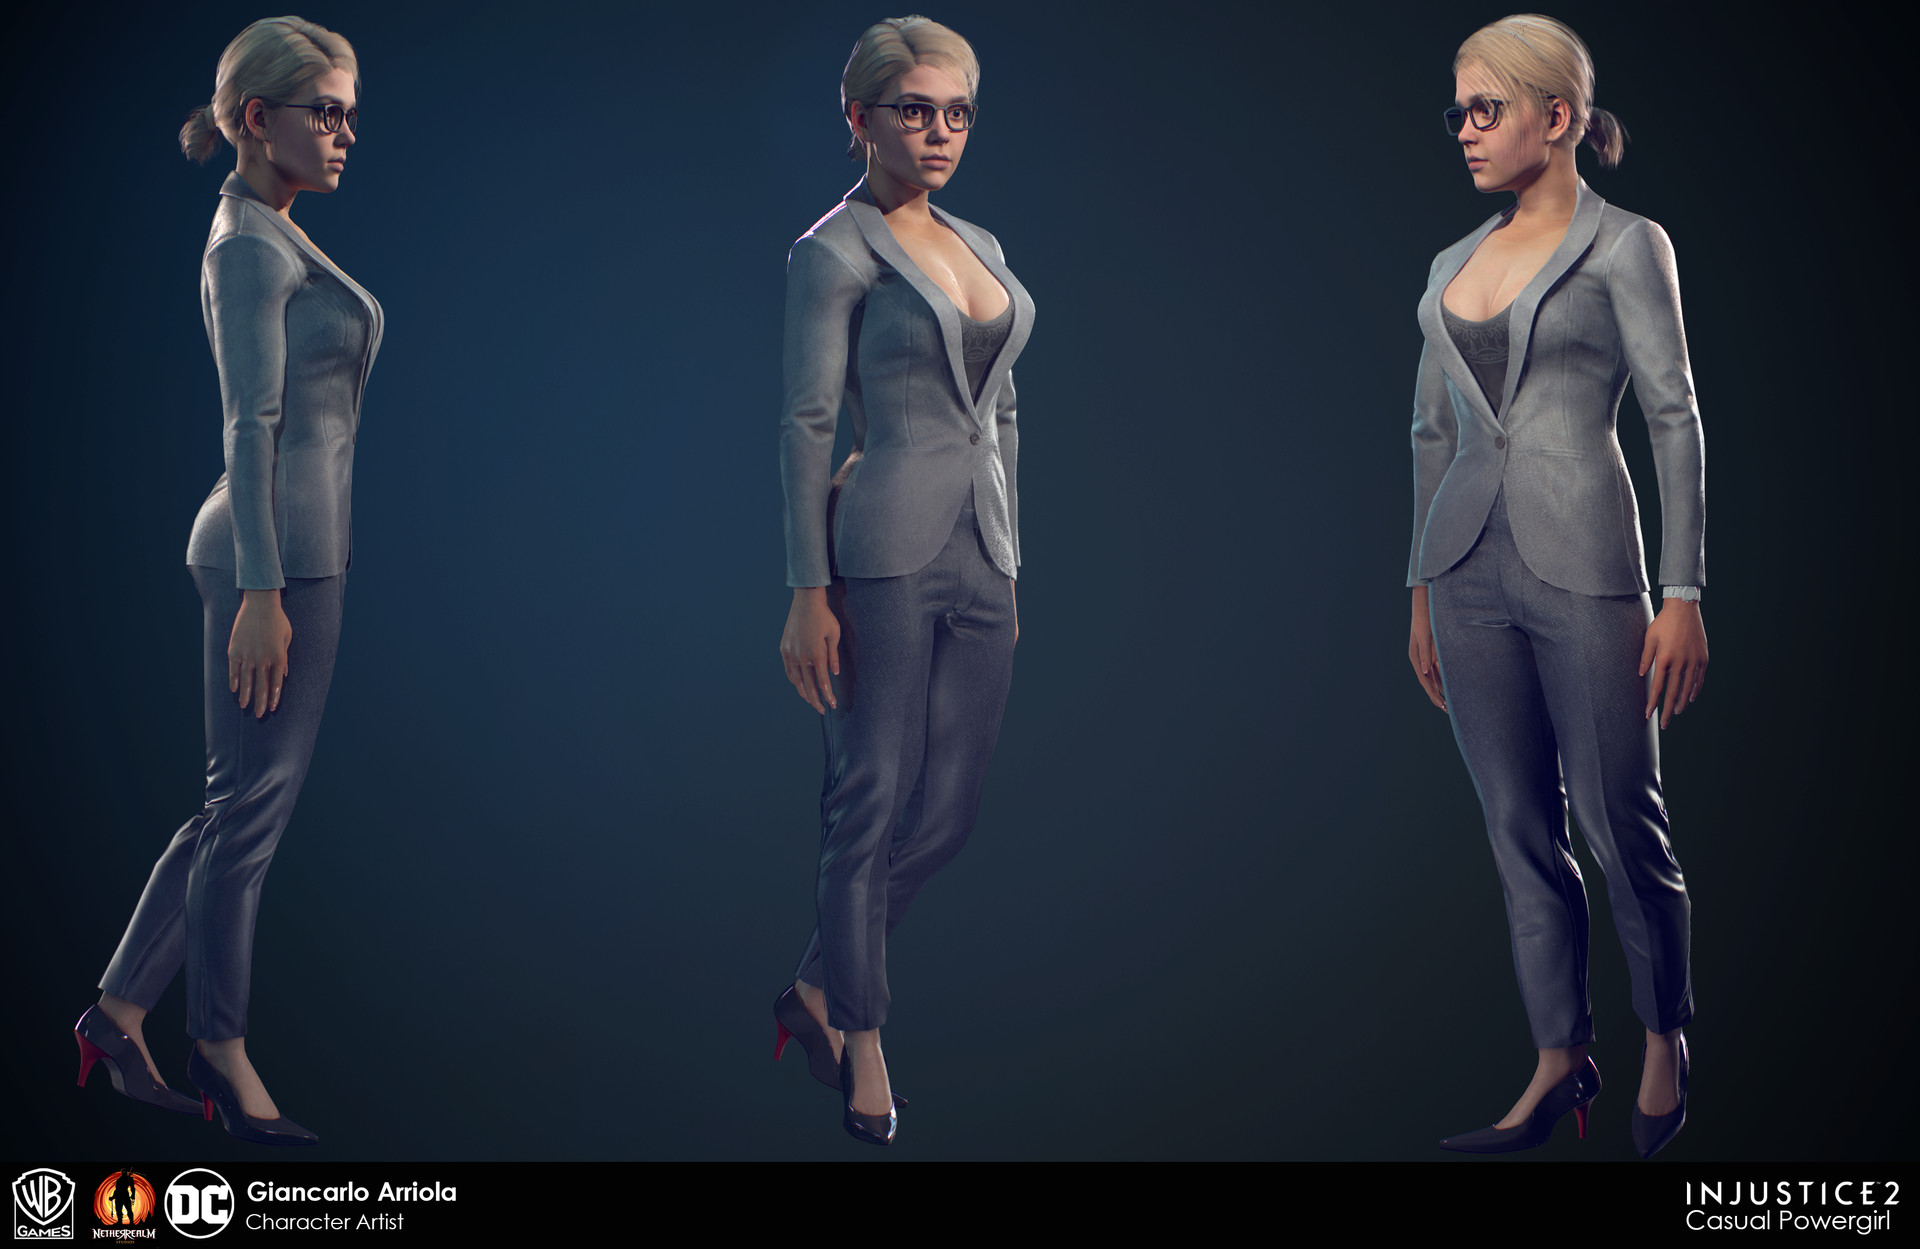 giancarlo arriola   injustice 2 business suit powergirl